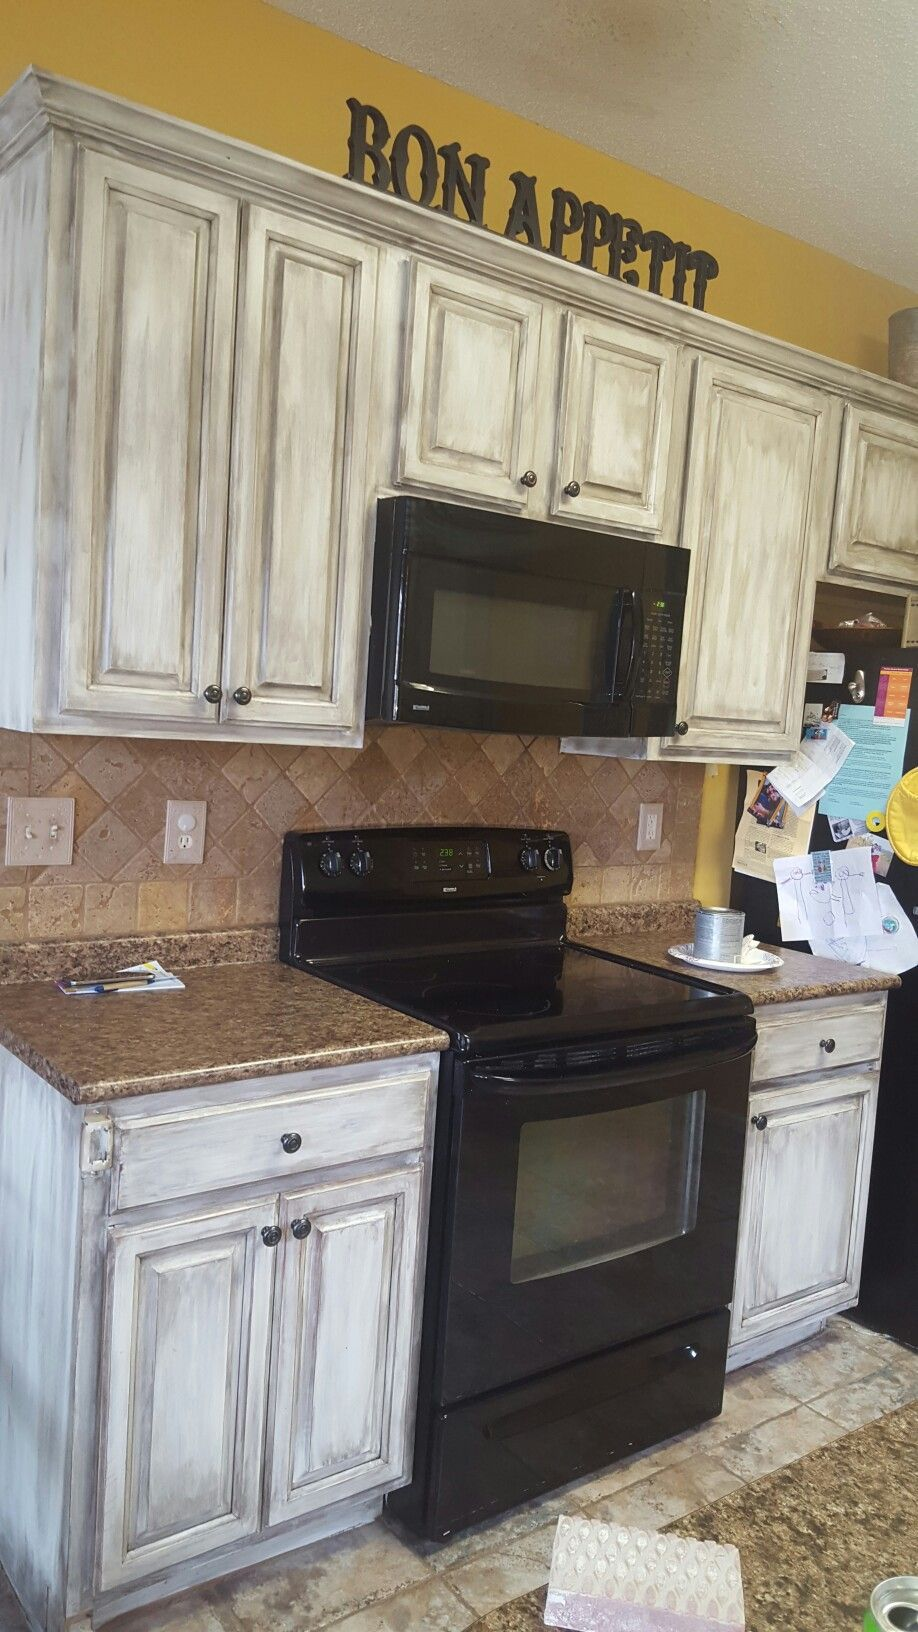 Distressed Kitchen Cabinets Are Achieved By A Quick And Easy Faux Finish Technique You Can Do In A Matter Of Hours Transform Your